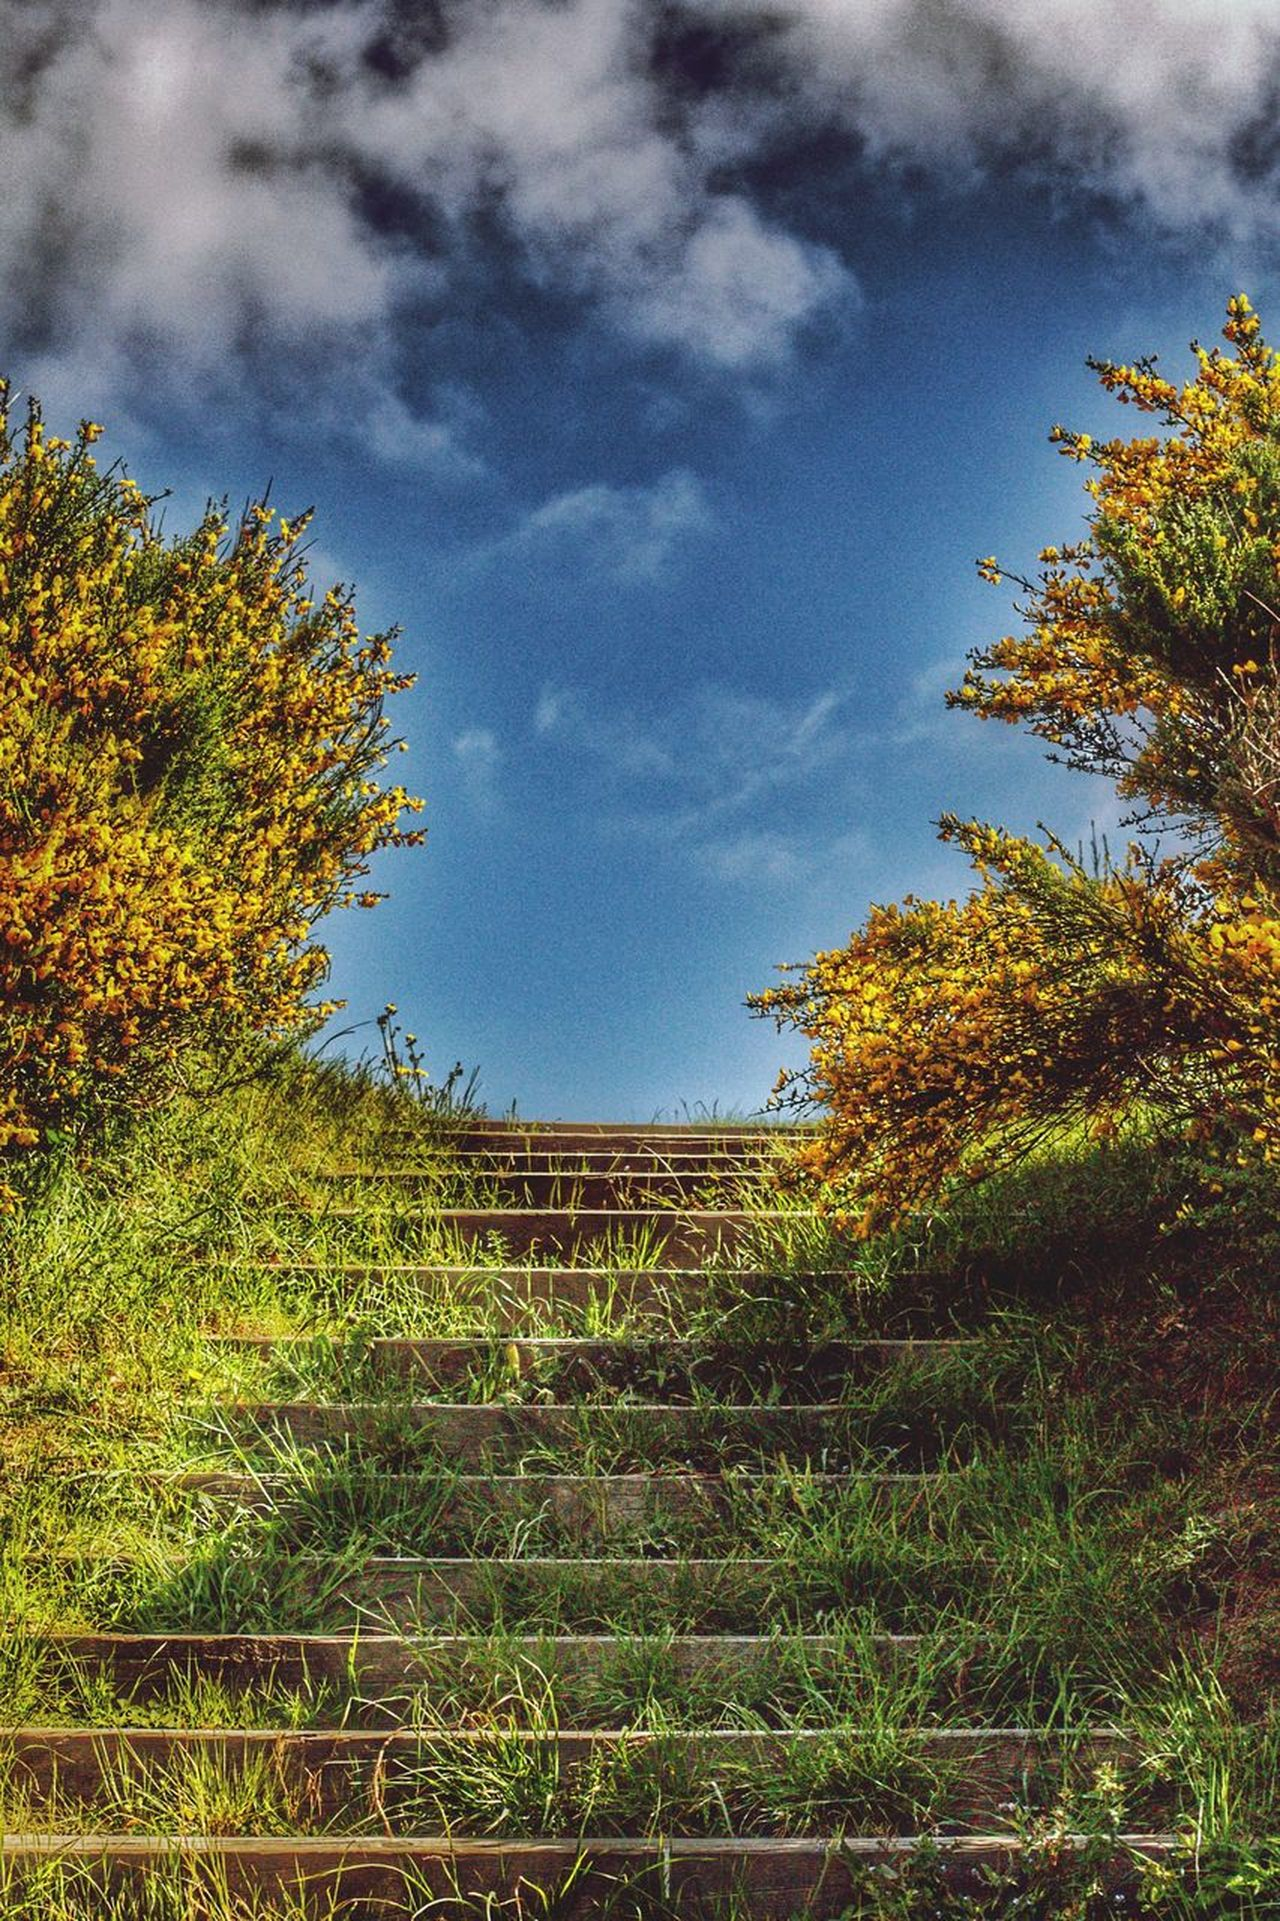 Stairs into the heaven Tree Sky Cloud - Sky Growth Nature Day Autumn No People Outdoors Low Angle View Beauty In Nature Leaf Scenics Architecture Hdr_pics Hdrphotography Hdr Edit HDR Freshness Bristol 3XSPUnity Beauty In Nature